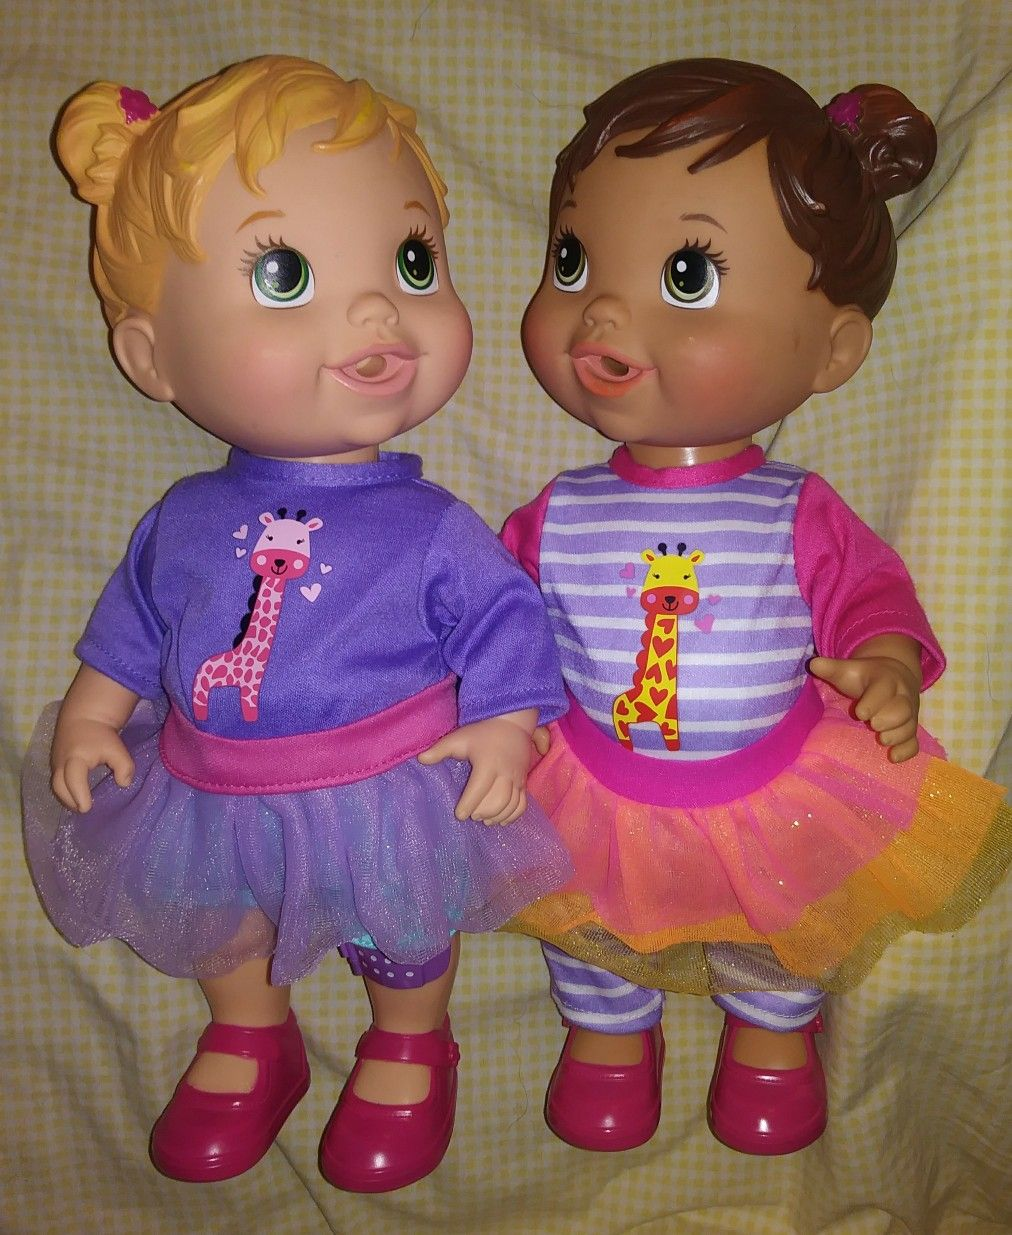 Baby Has A Boo Boo Dolls Baby Alive Dolls Baby Alive Dolls